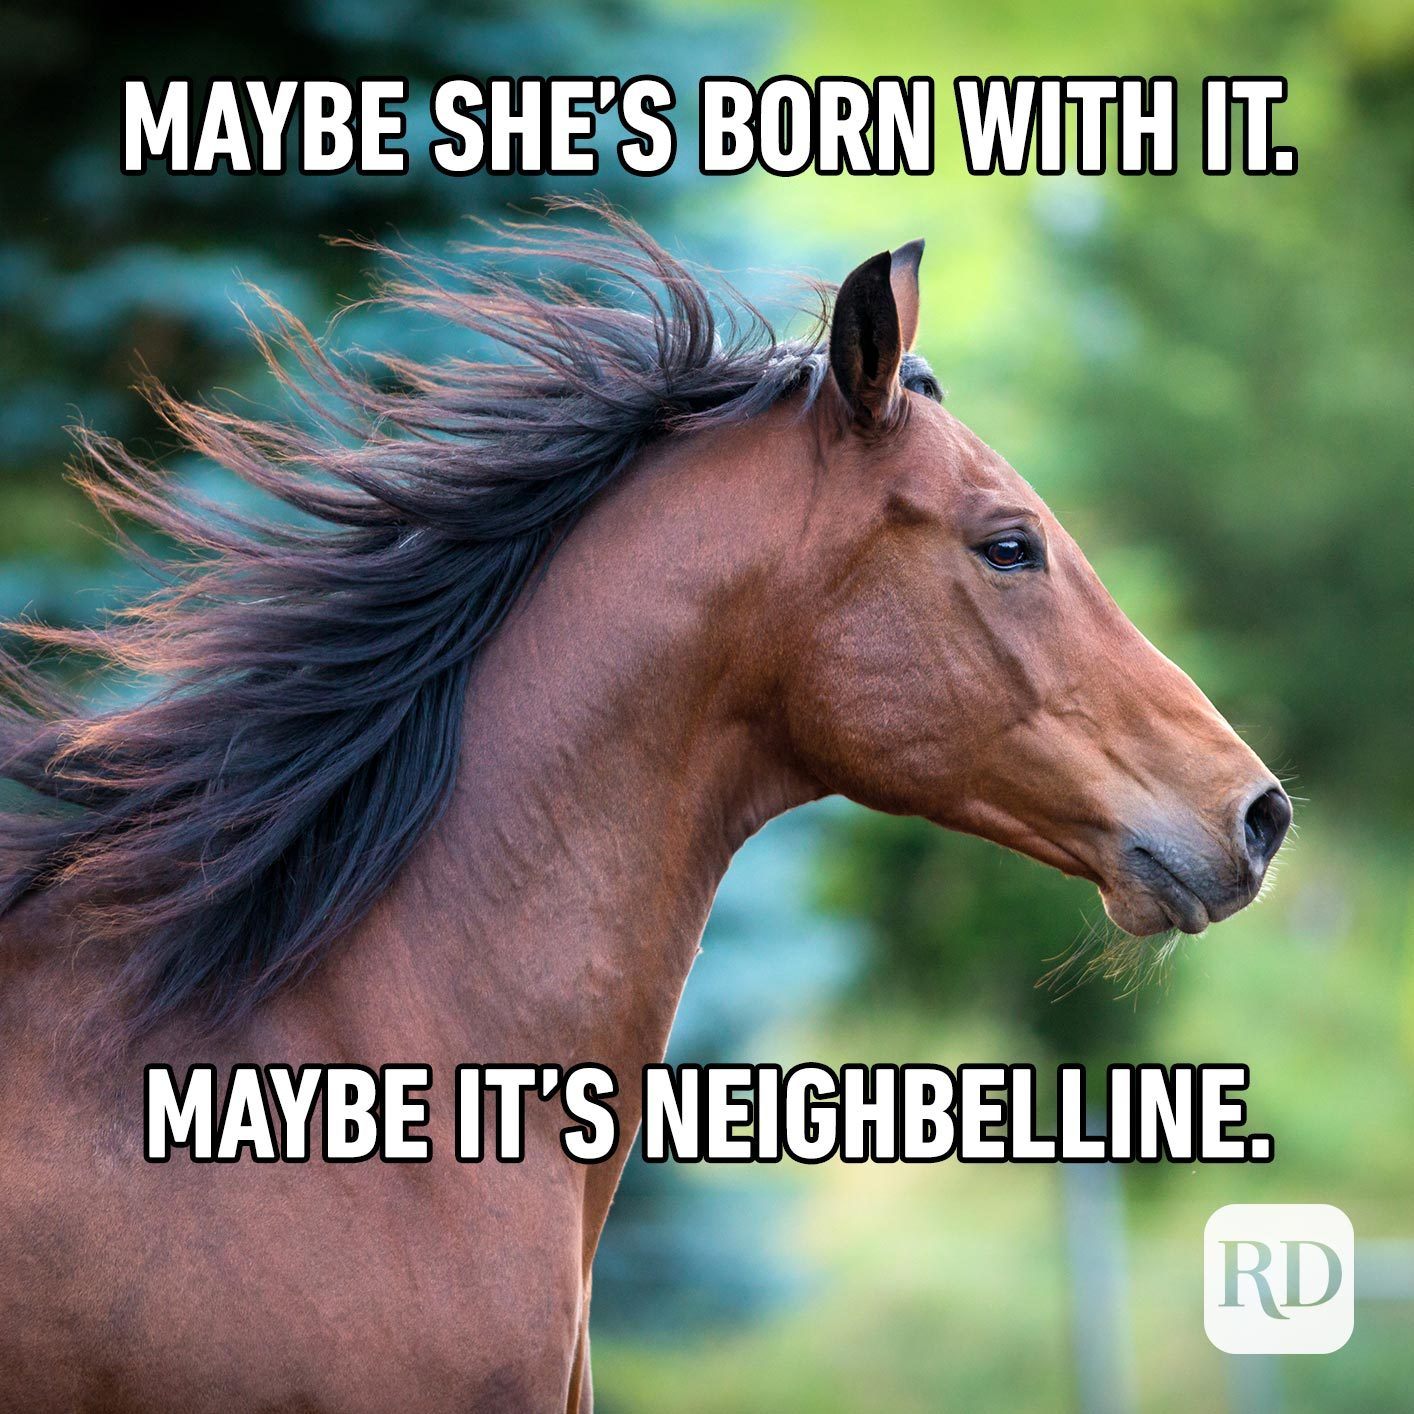 Horse with flowing hair. Meme text: Maybe she's born with it… maybe it's neighbelline